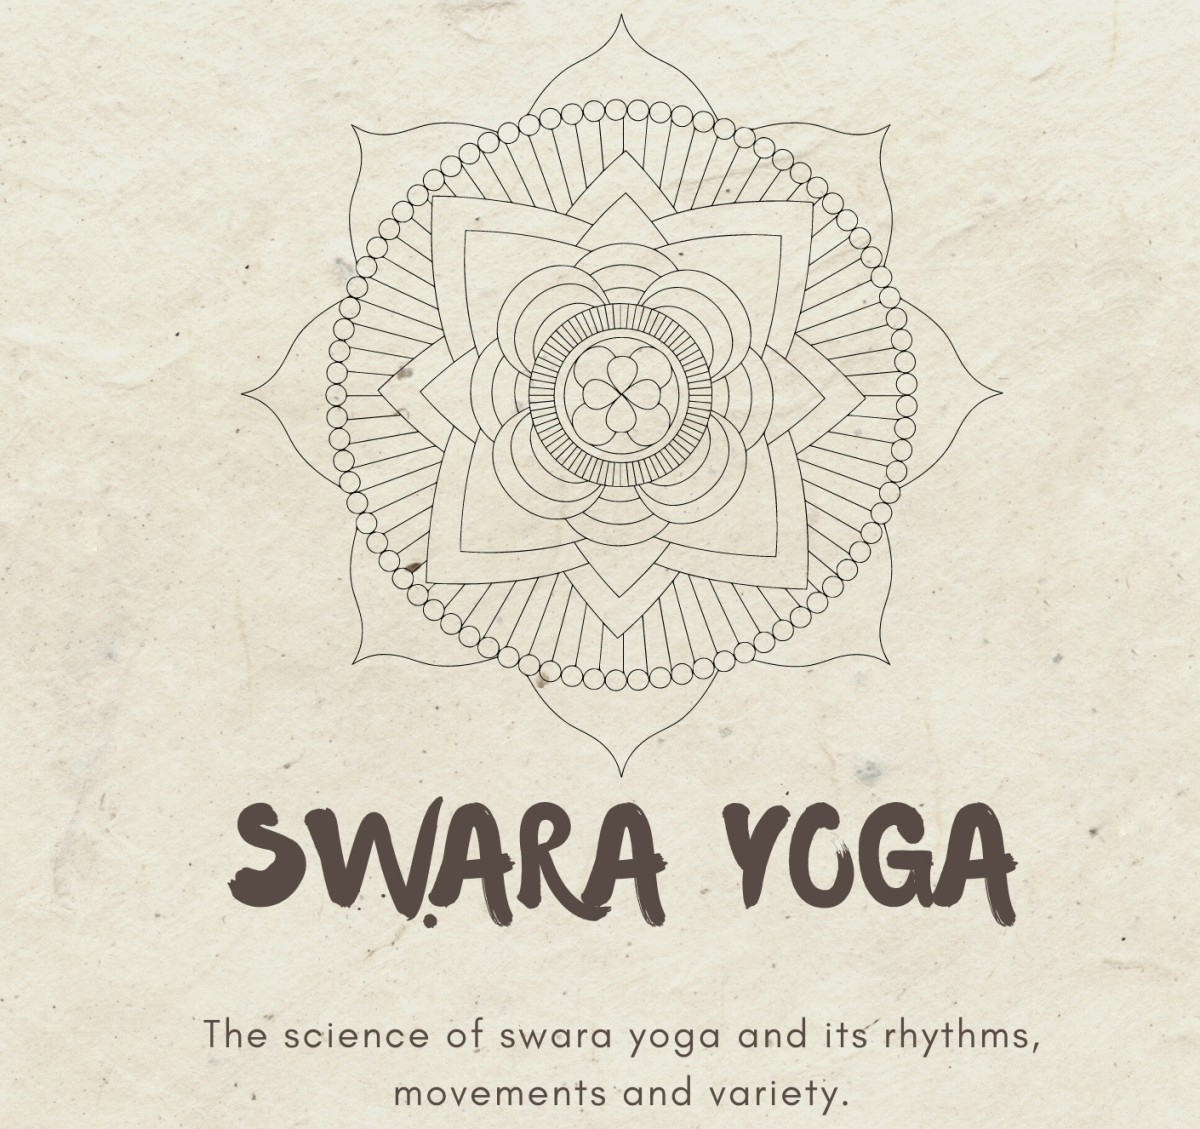 Swara Yoga: A Secret Knowledge About Breathing Science and It's Subtle Benefits